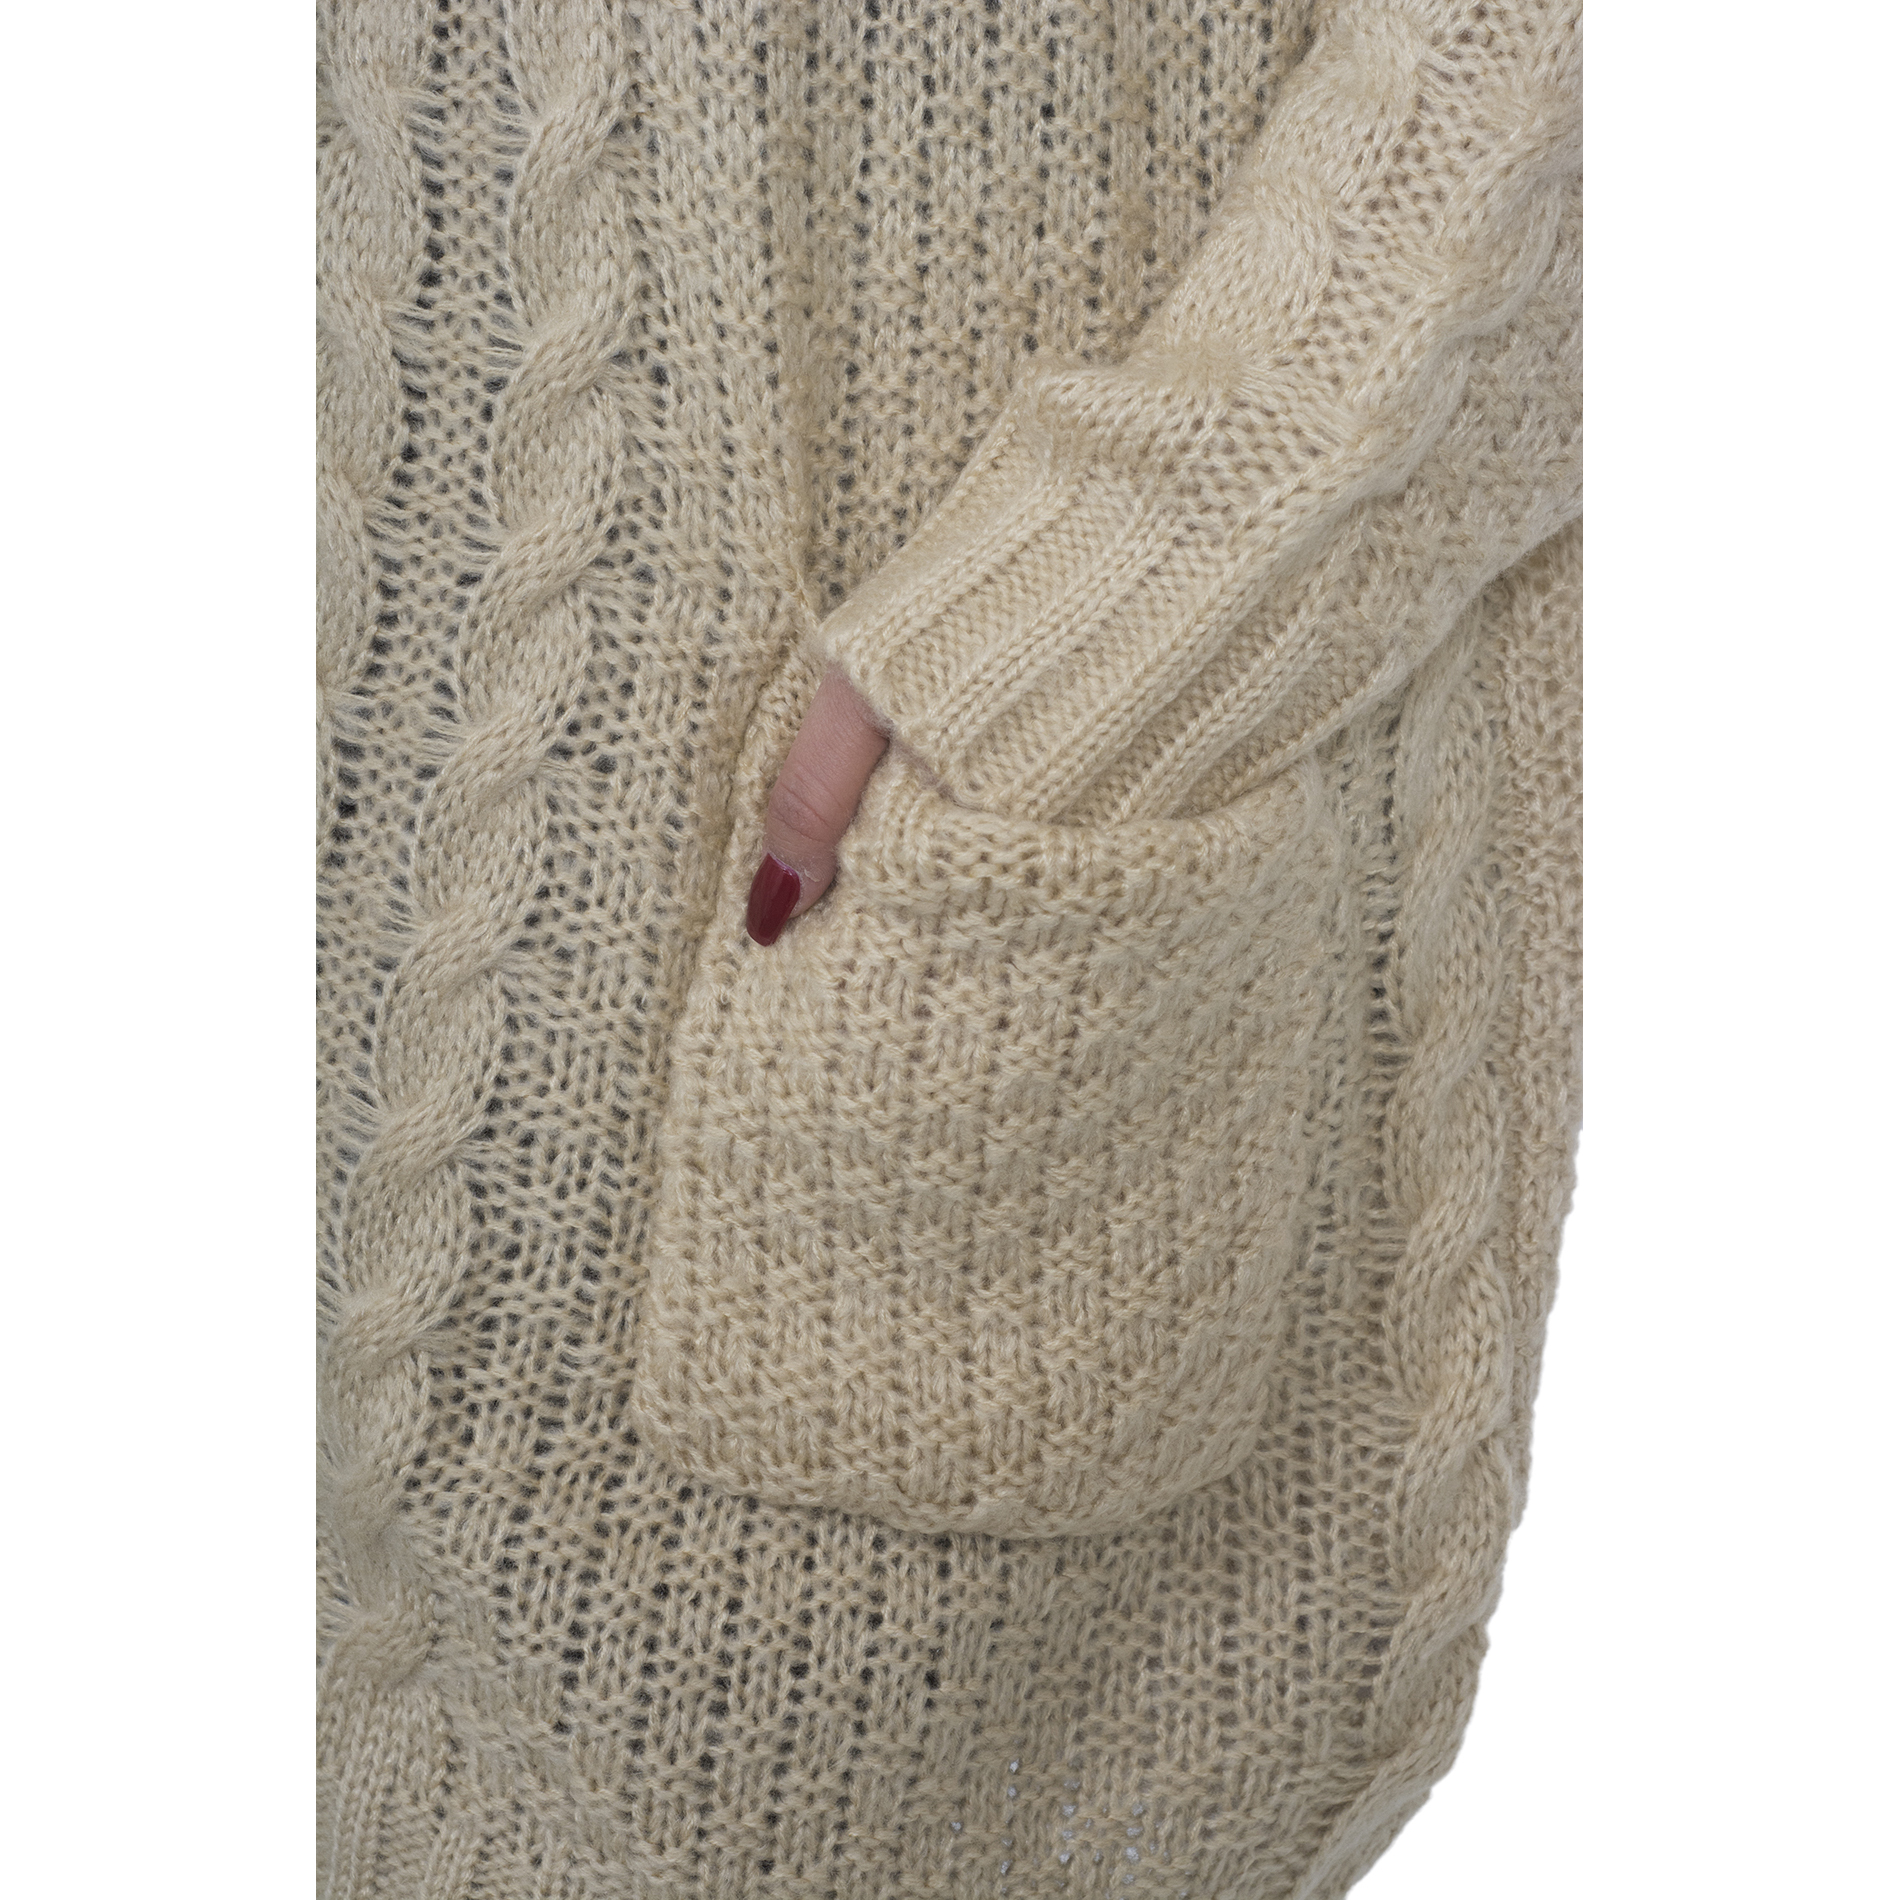 ac86854a2d Hot From Hollywood - Women s Chunky Cable Knitted Oversized Sweater Dress  with Front Pockets - Walmart.com